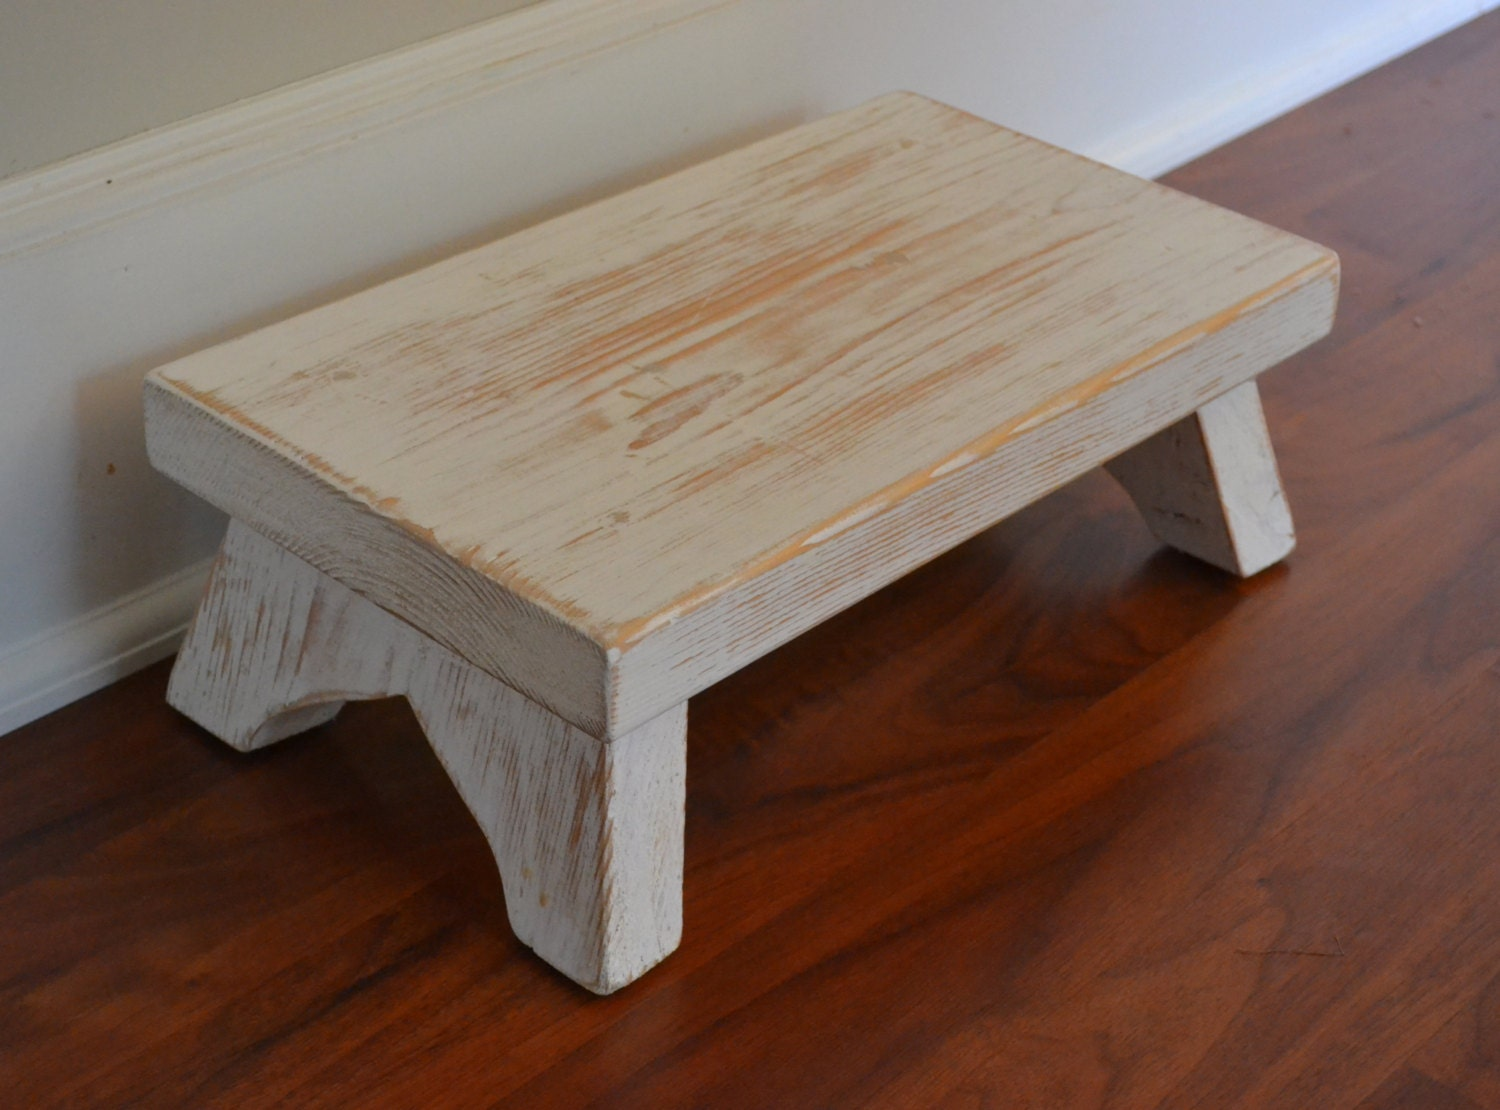 Stool Step Stool Small Stool Reclaimed Wood Stool Wooden